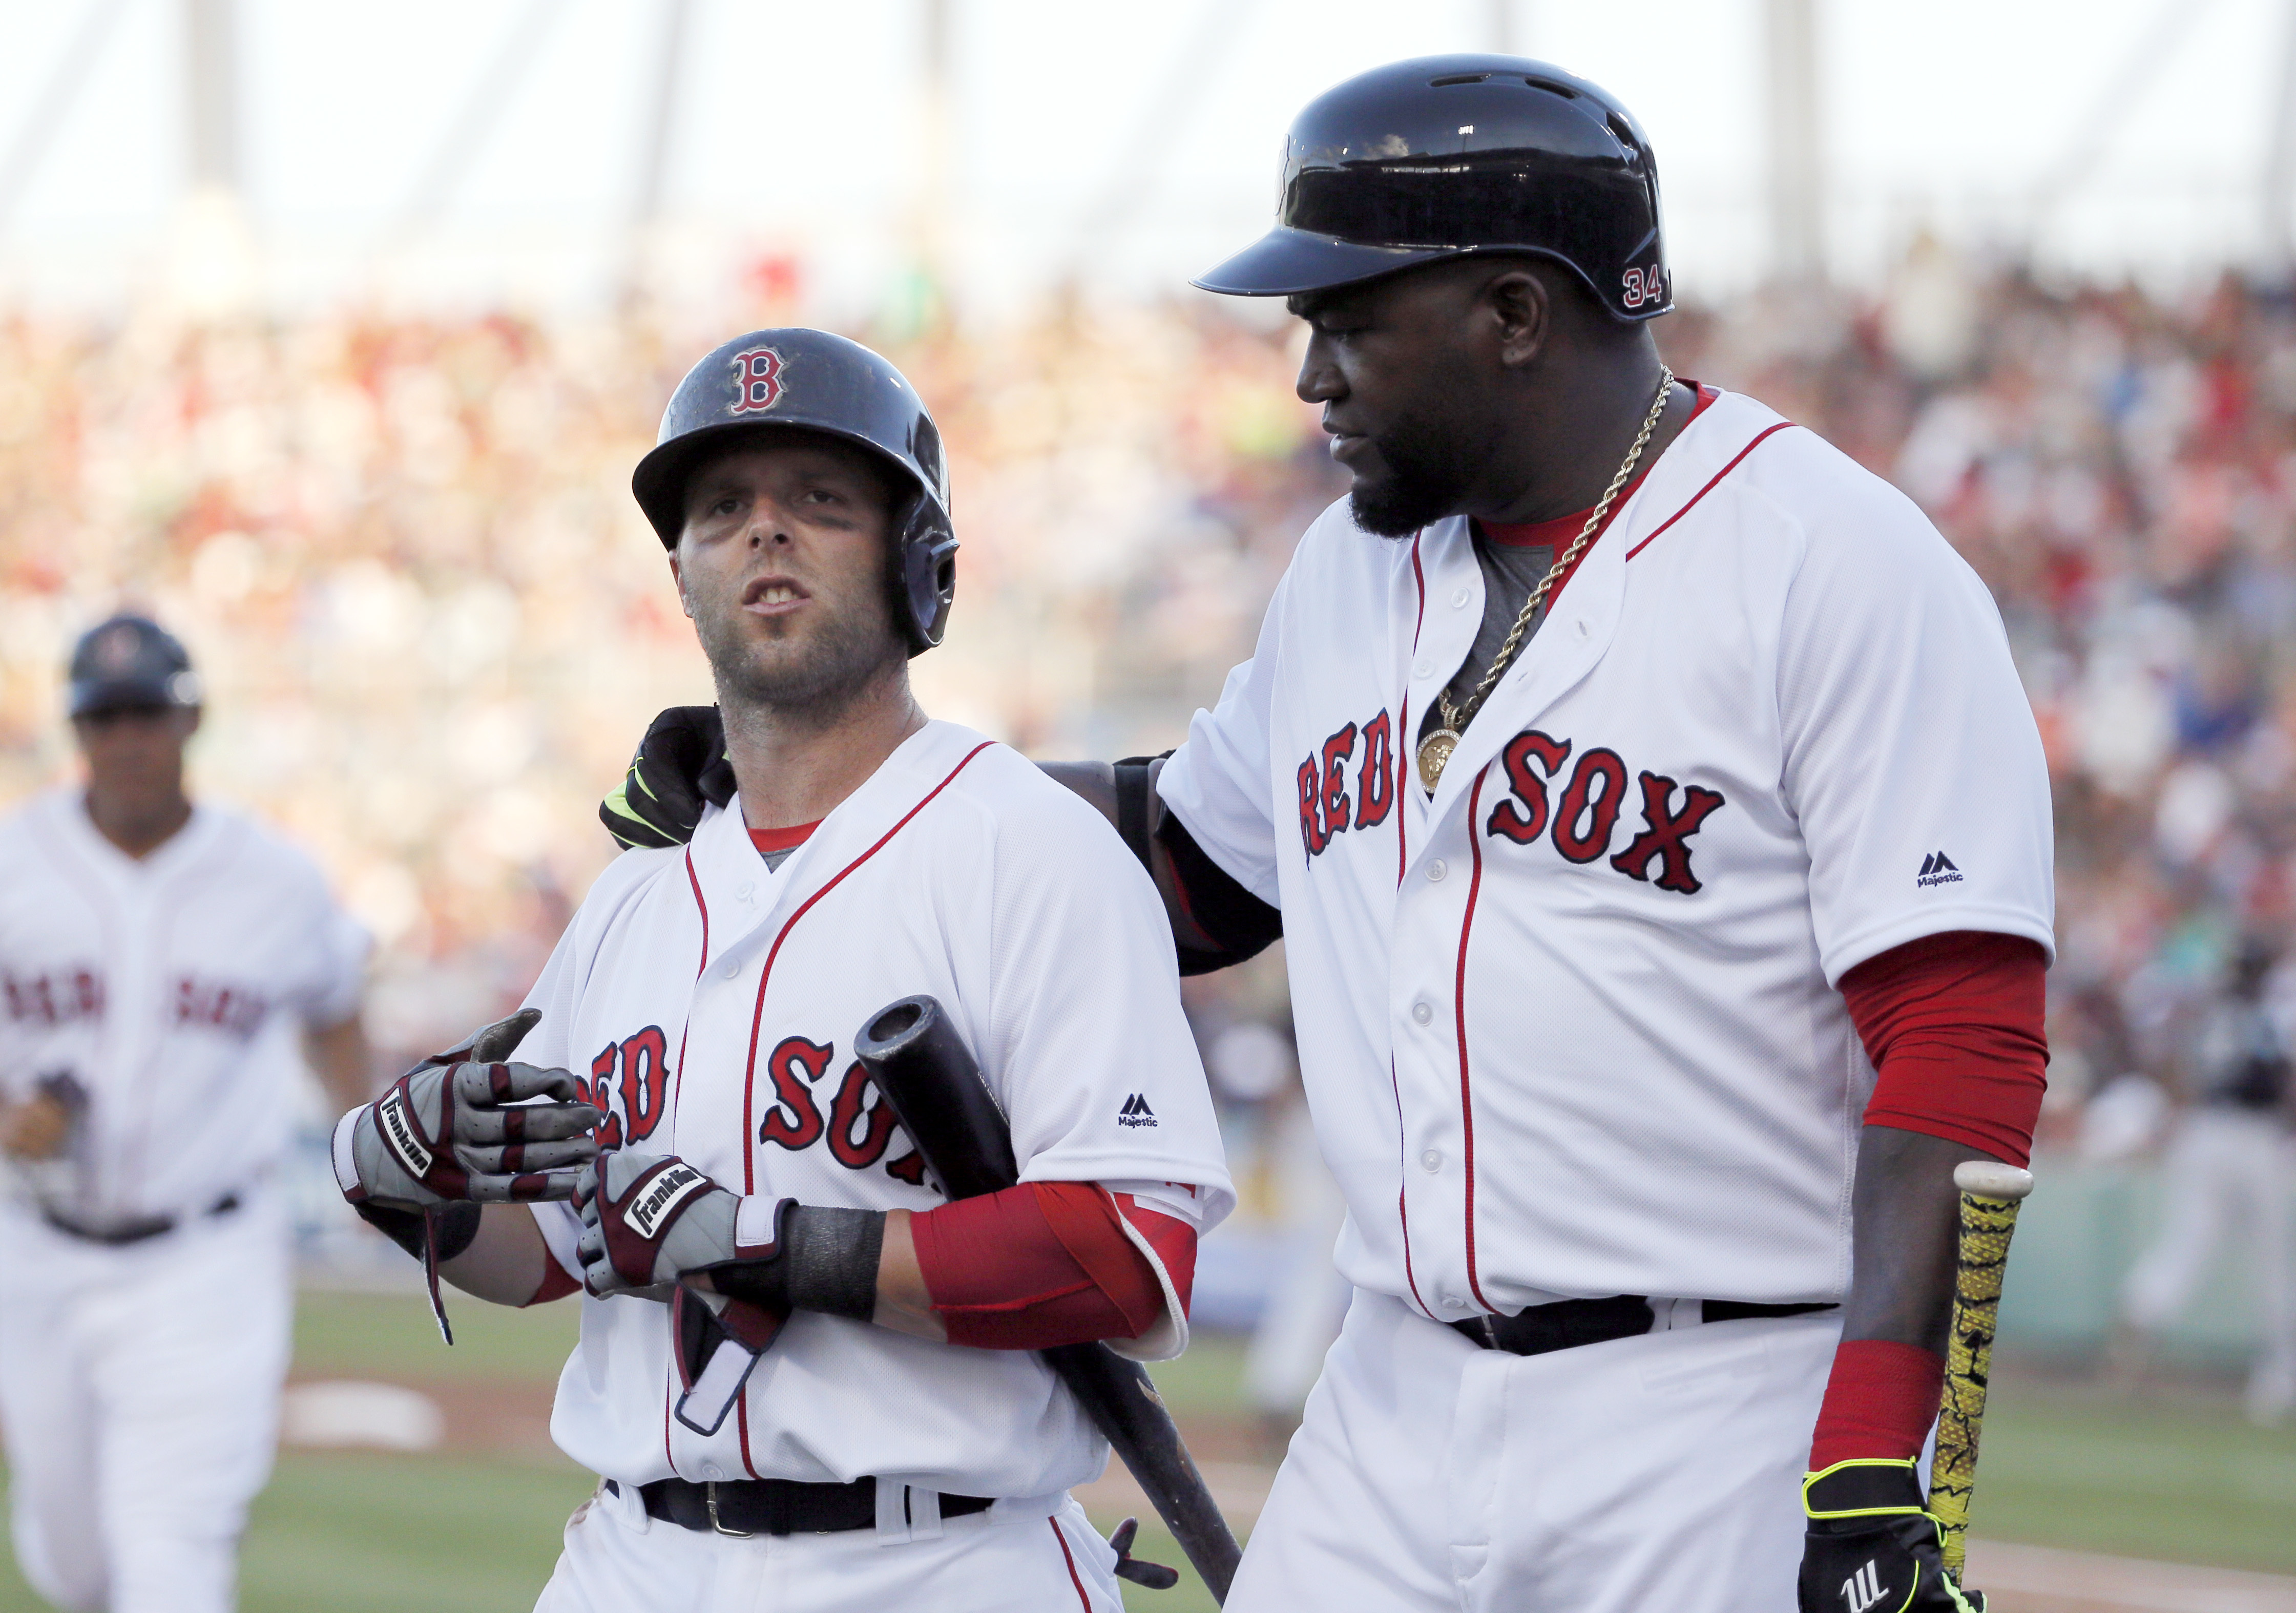 Boston Red Sox's David Ortiz, right, puts his arm around Dustin Pedroia (15) as the two walk back to the dugout after Pedroia struck against against pitches from New York Yankees' Ivan Nova in the third inning of a spring training baseball game, Tuesday,